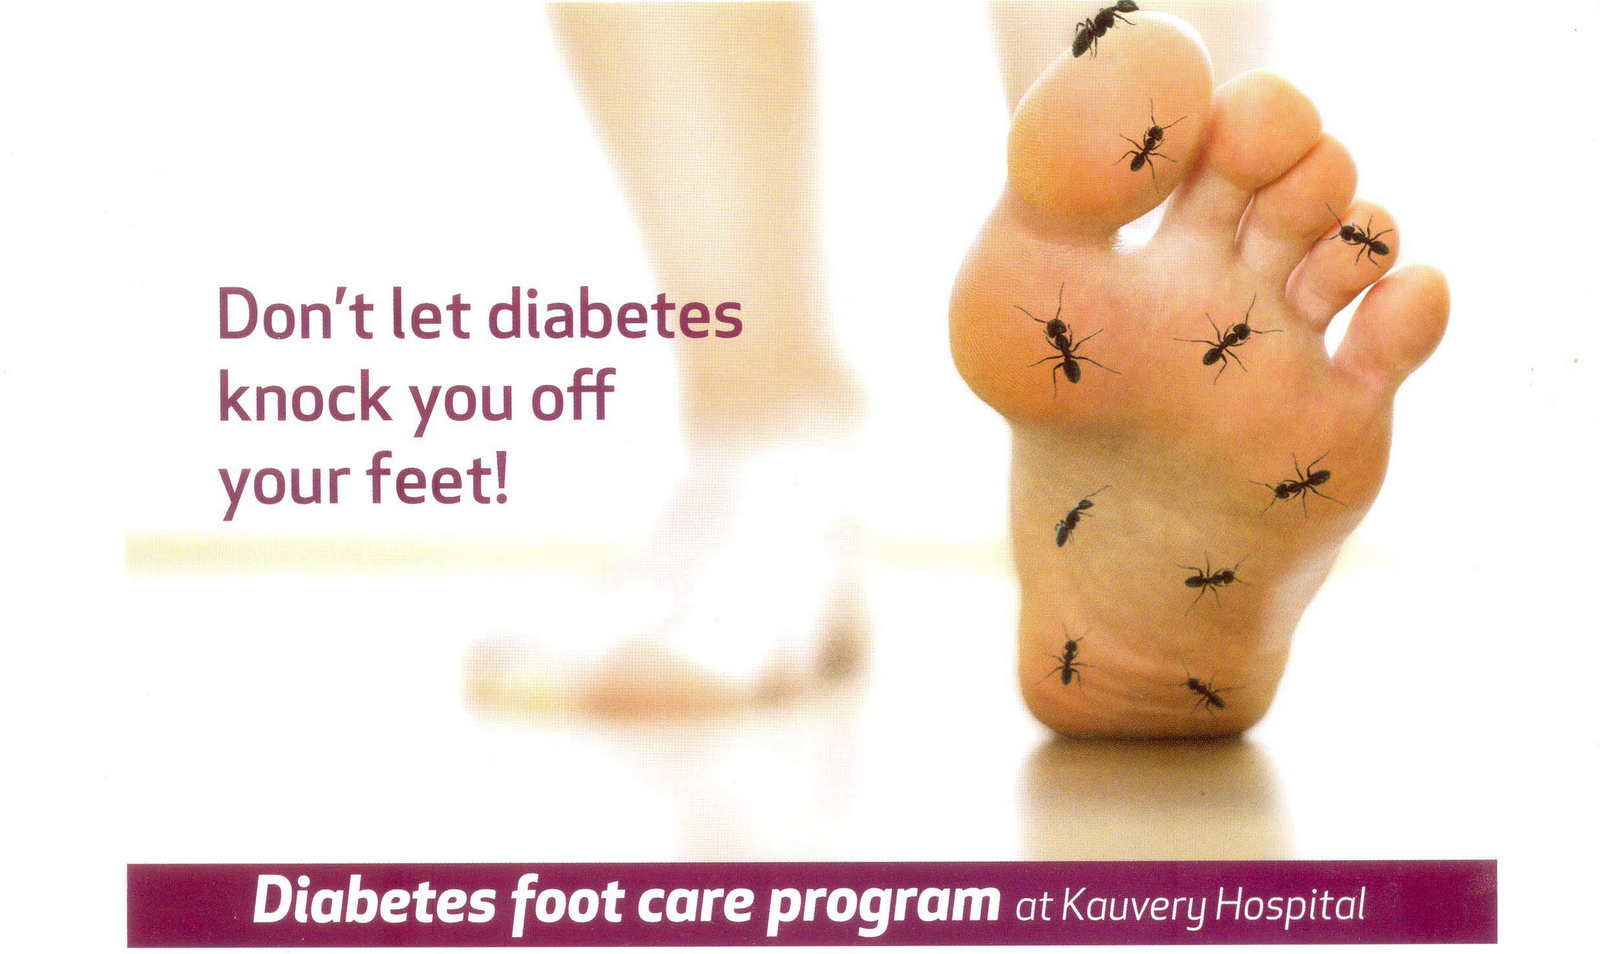 Diabetic foot care hospital hyderabad 2014